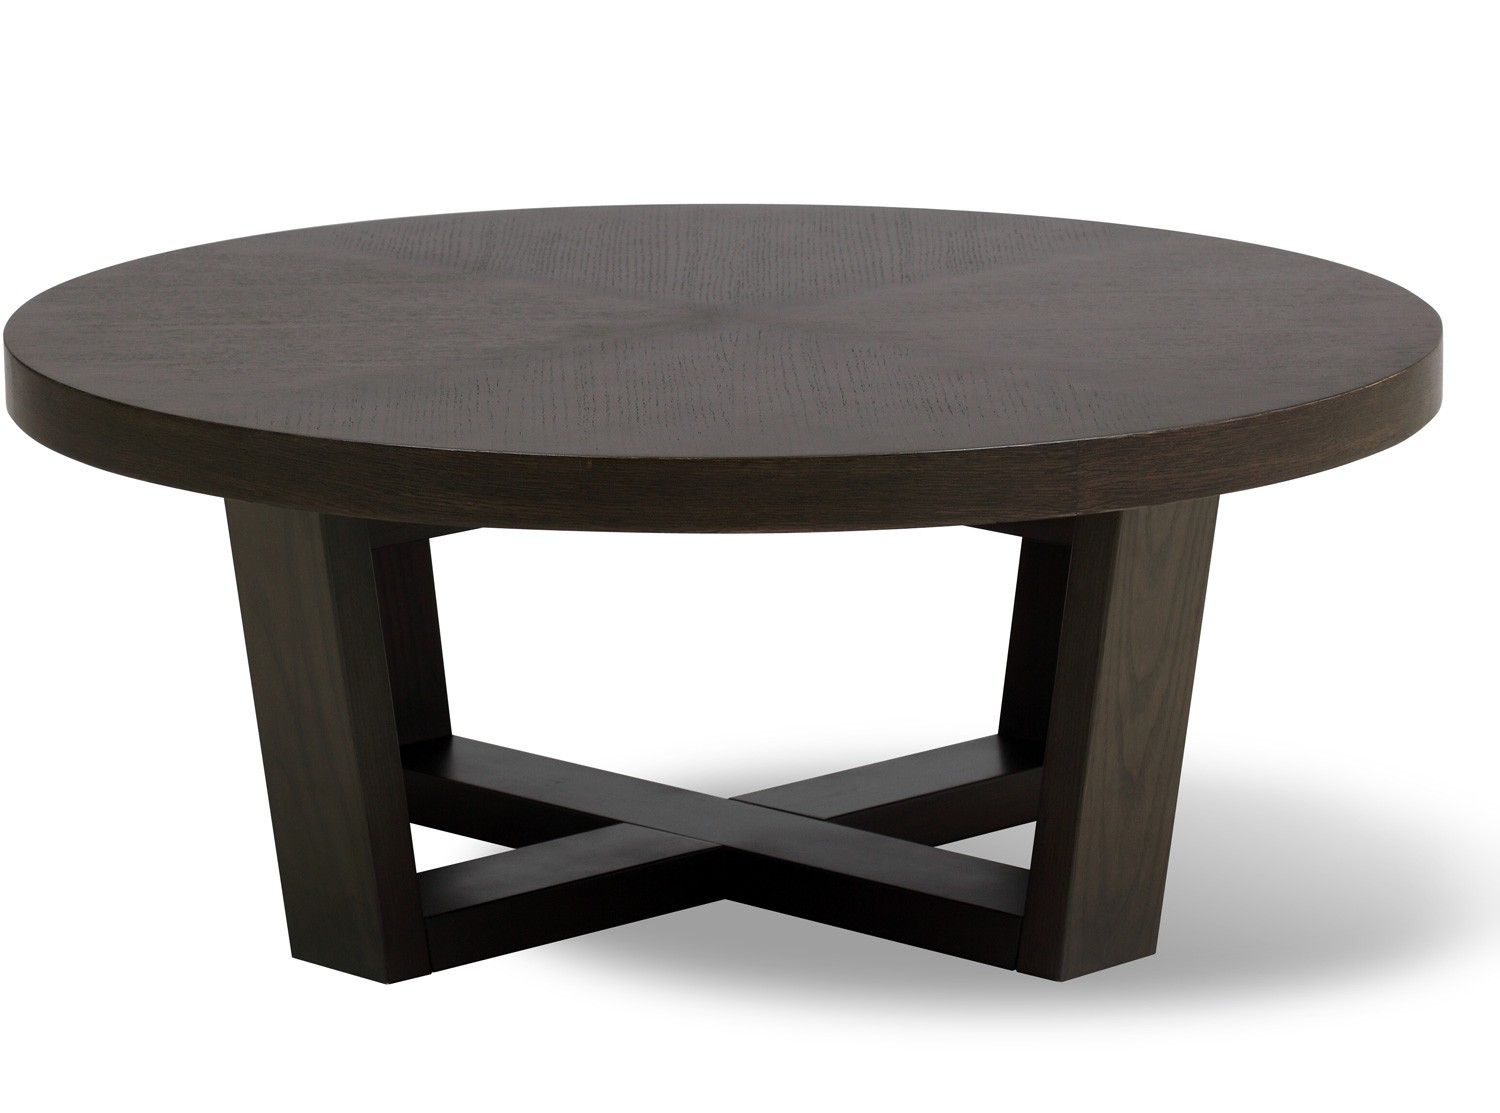 Tamma round coffee table 100 cm Round coffee tables